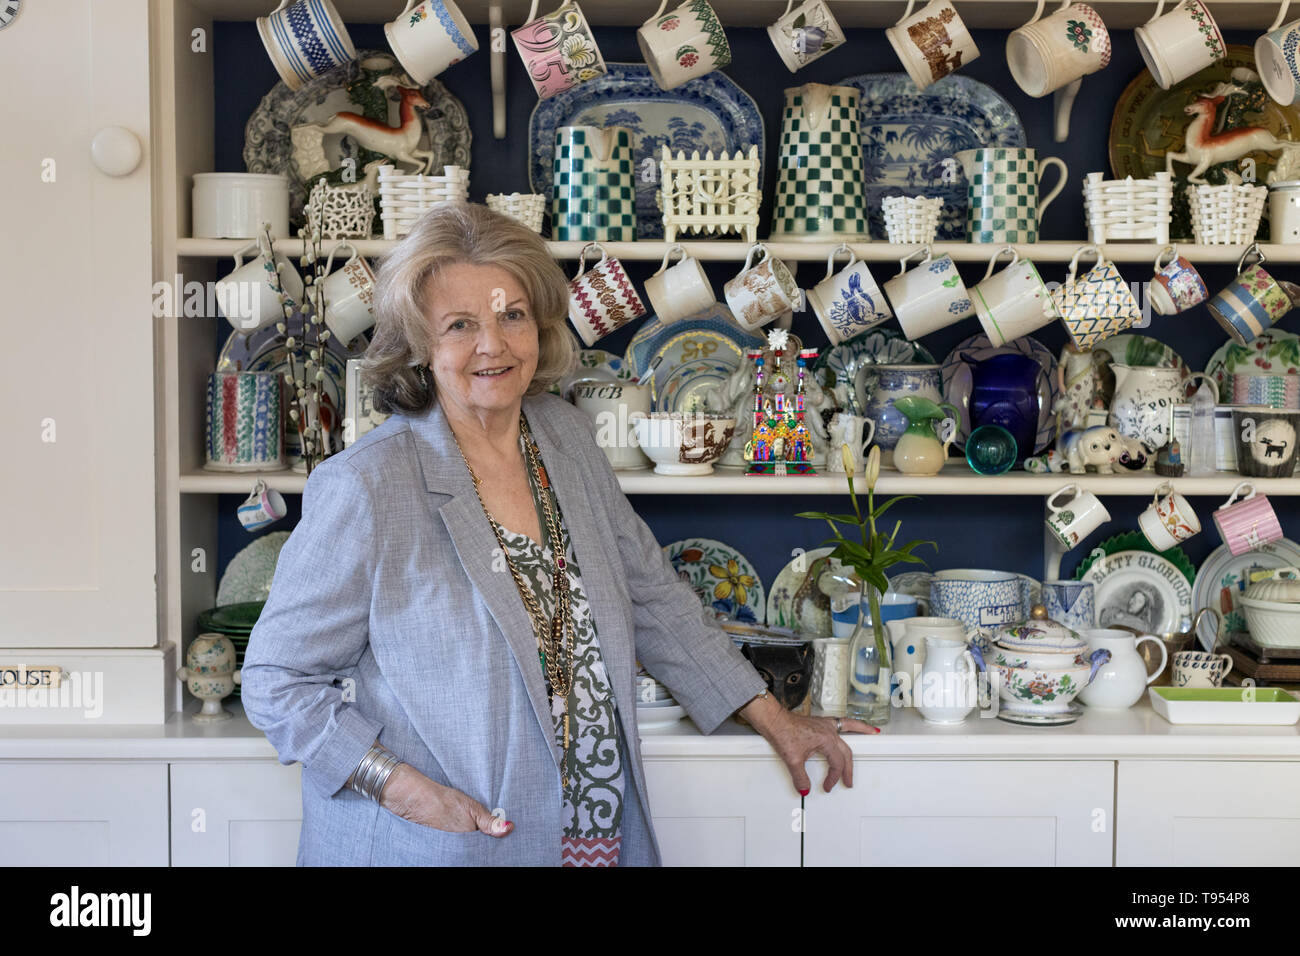 Polly Devlin OBE, Writer and Broadcaster at her home in West London. Born 1944 in Northern Ireland. Photographed in front of her kitchen dresser with  - Stock Image